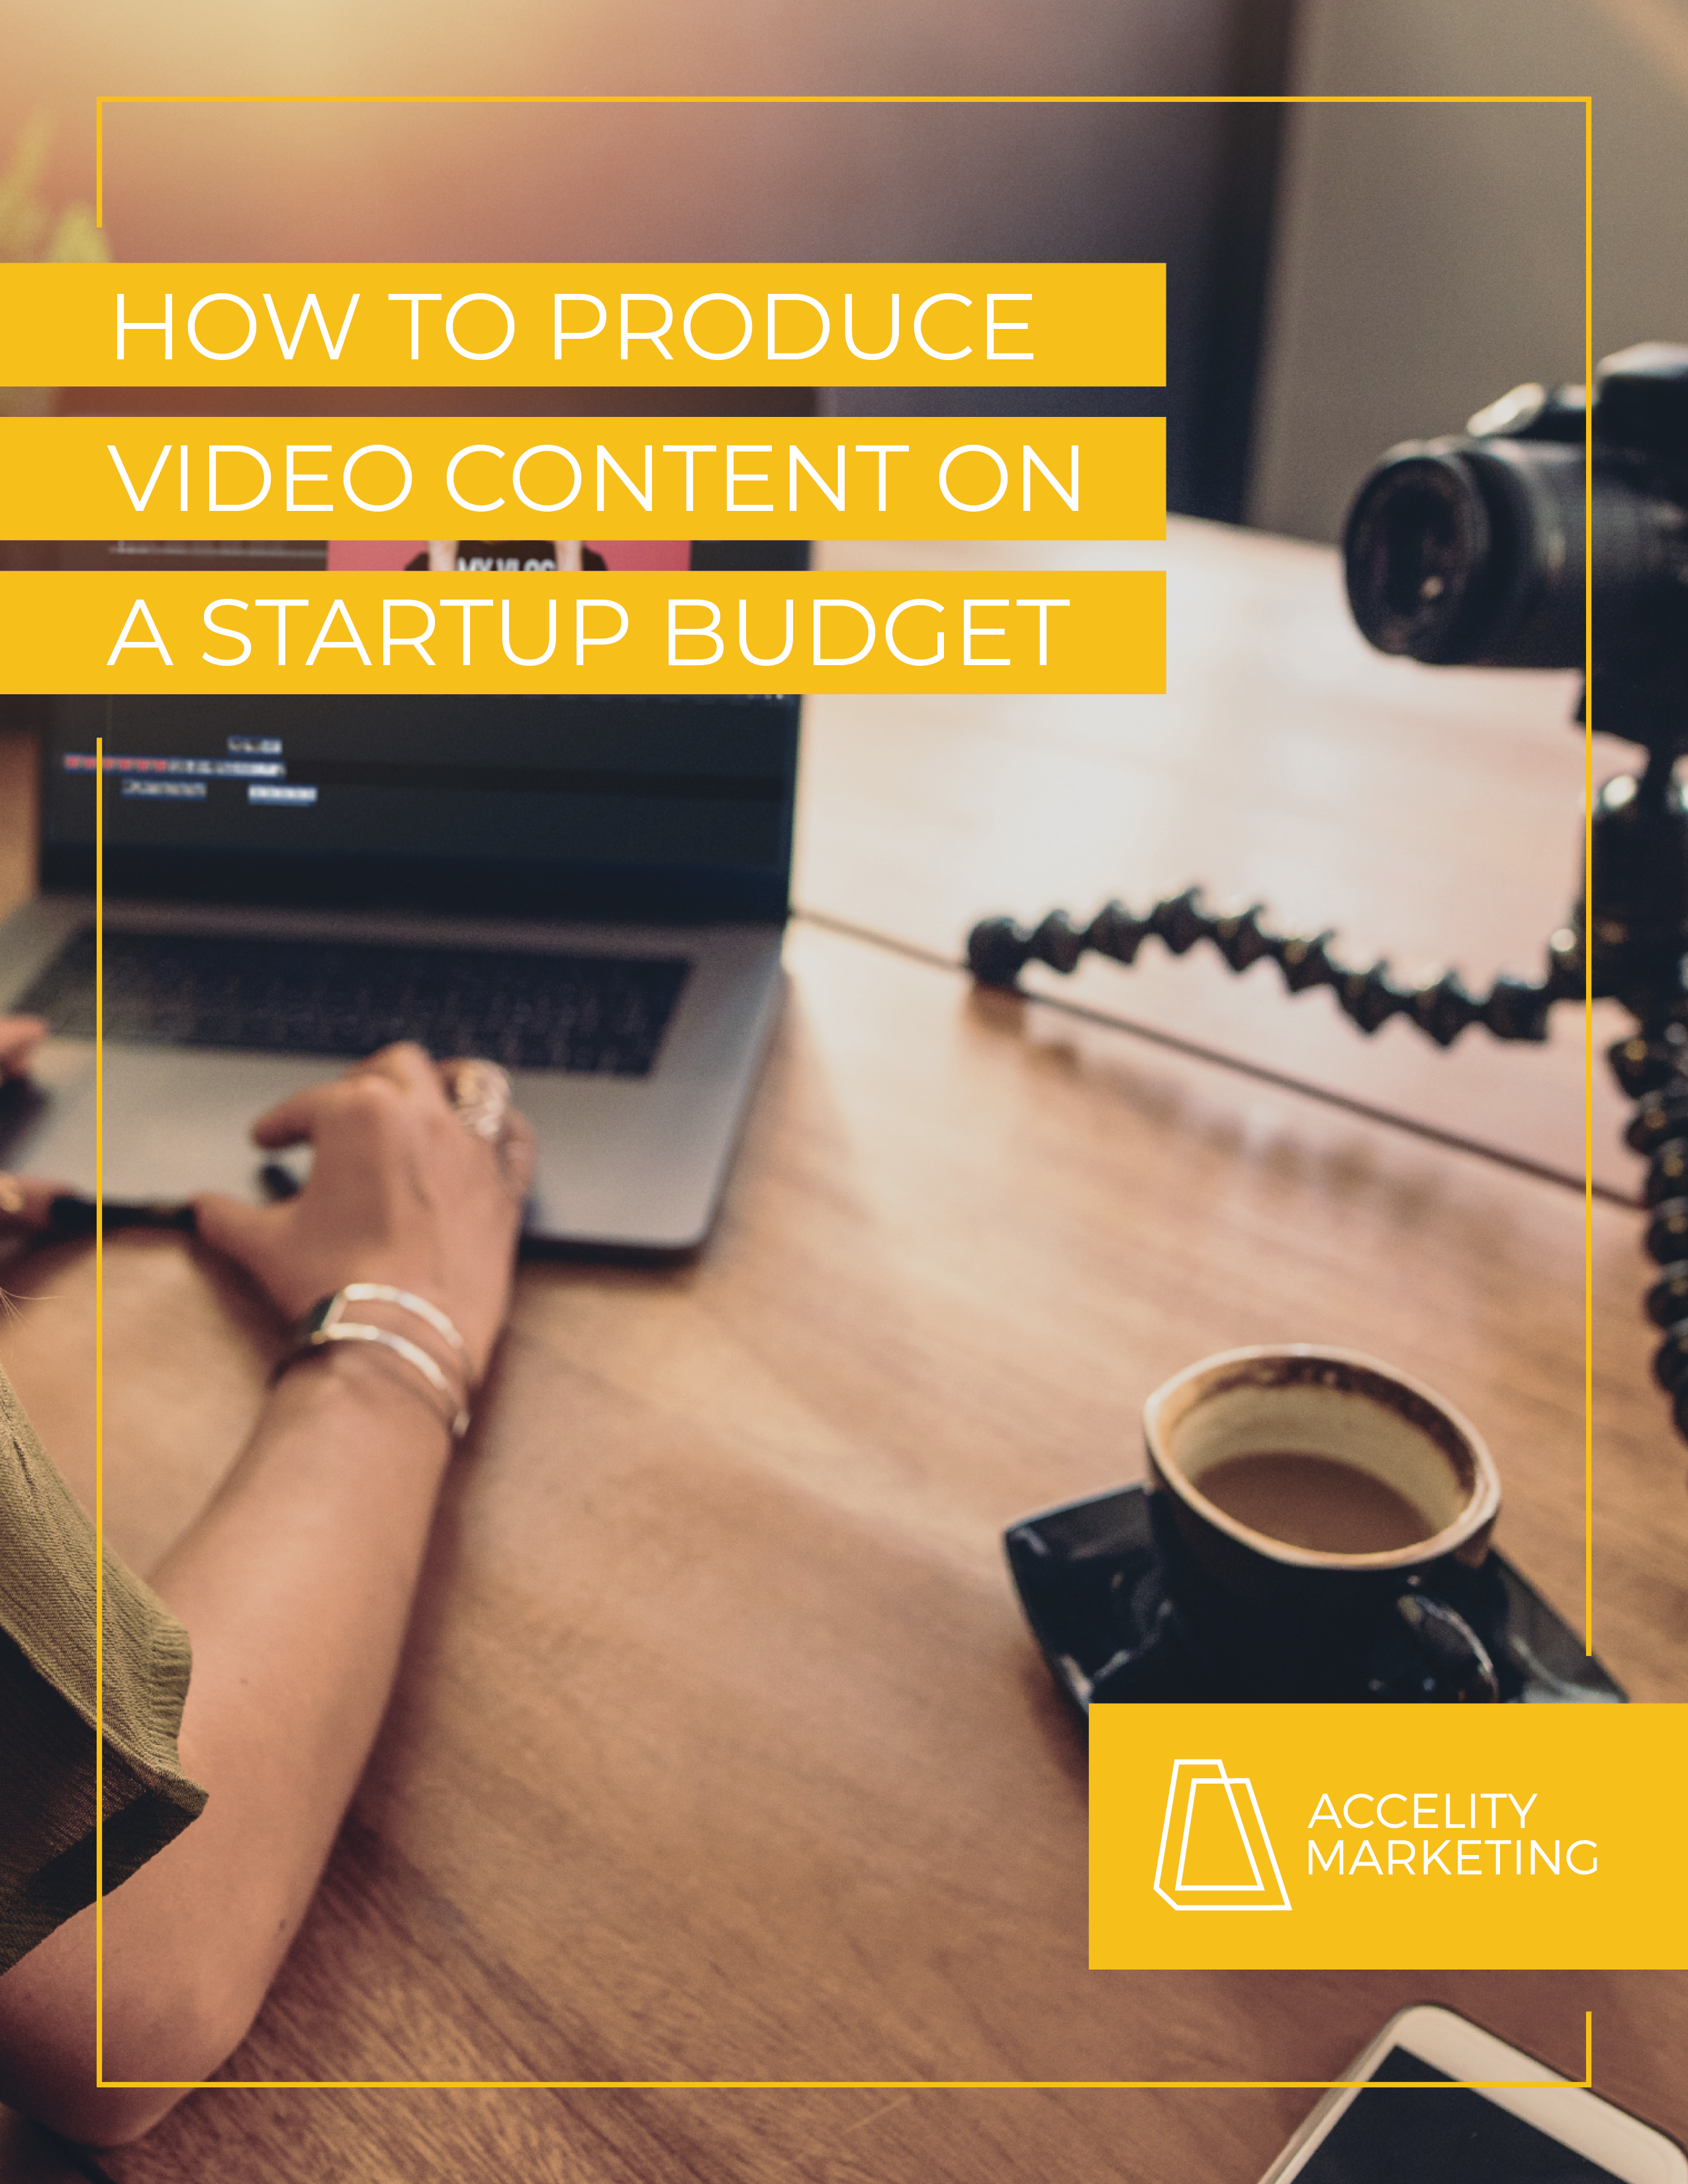 How to produce video content on a startup budget